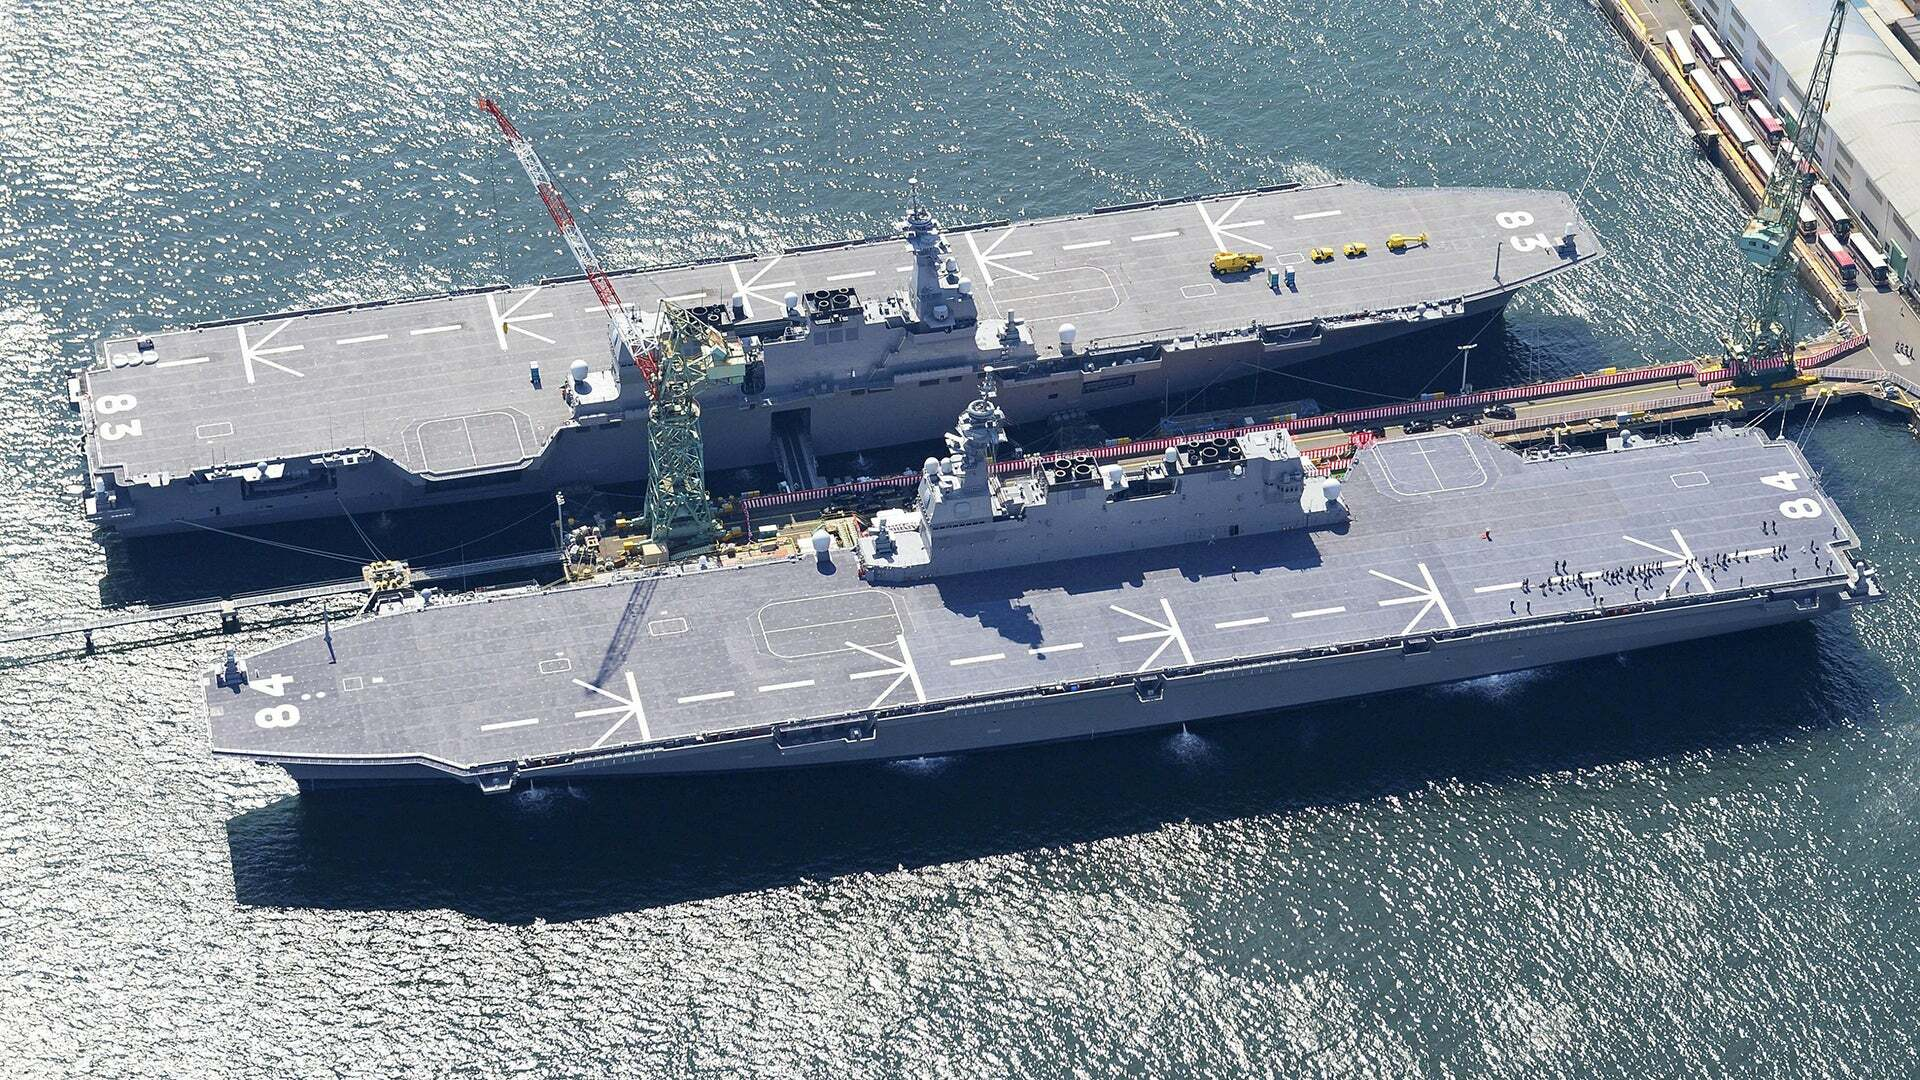 Izumo-class helicopter destroyers